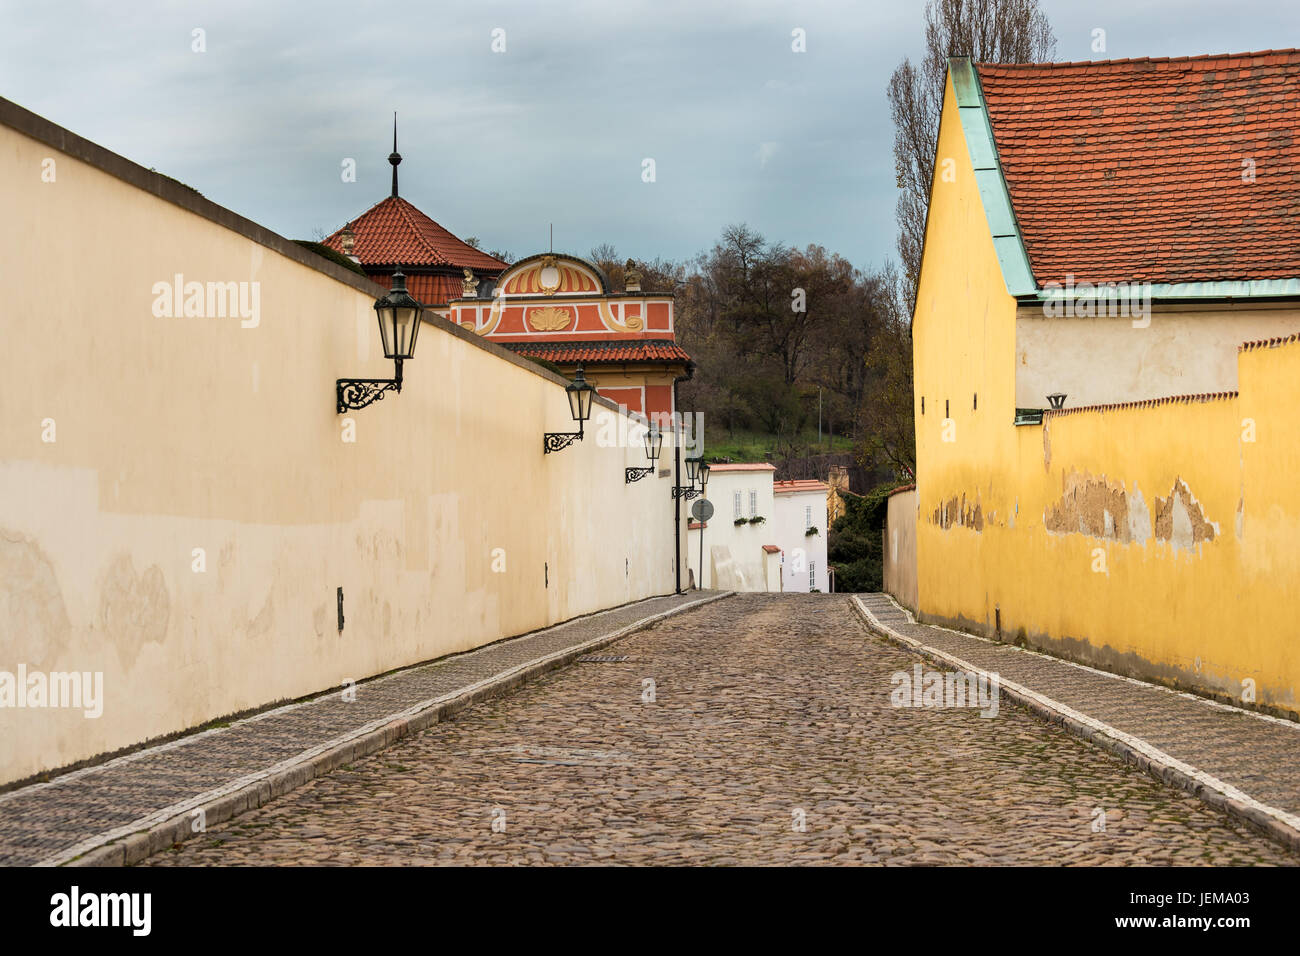 Facade of the old houses and buildings in Novy Svet near Loreto in Prague city - Stock Image